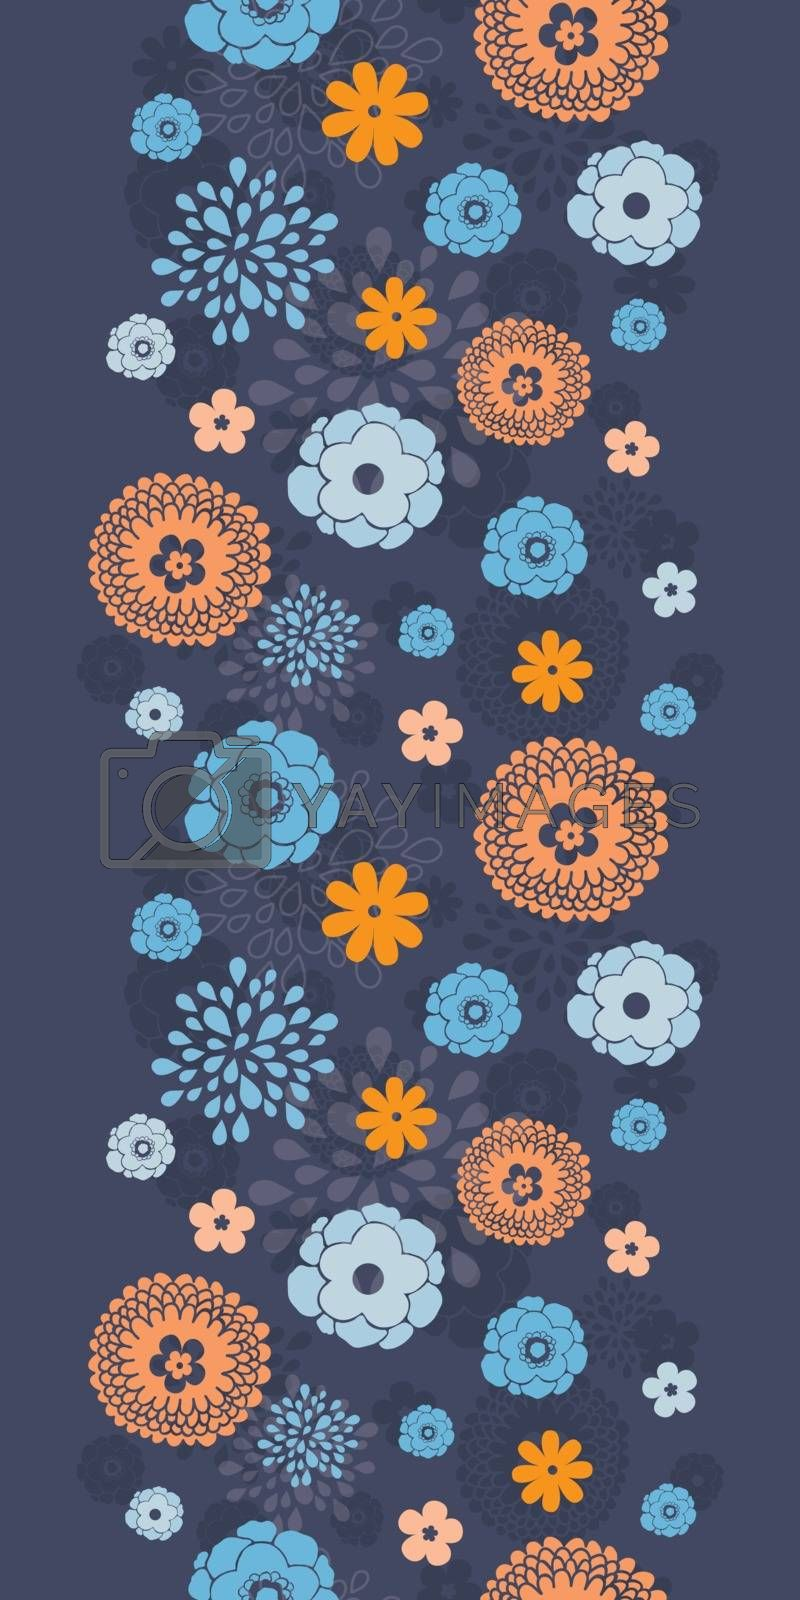 Vector golden and blue night flowers vertical border seamless pattern background graphic design